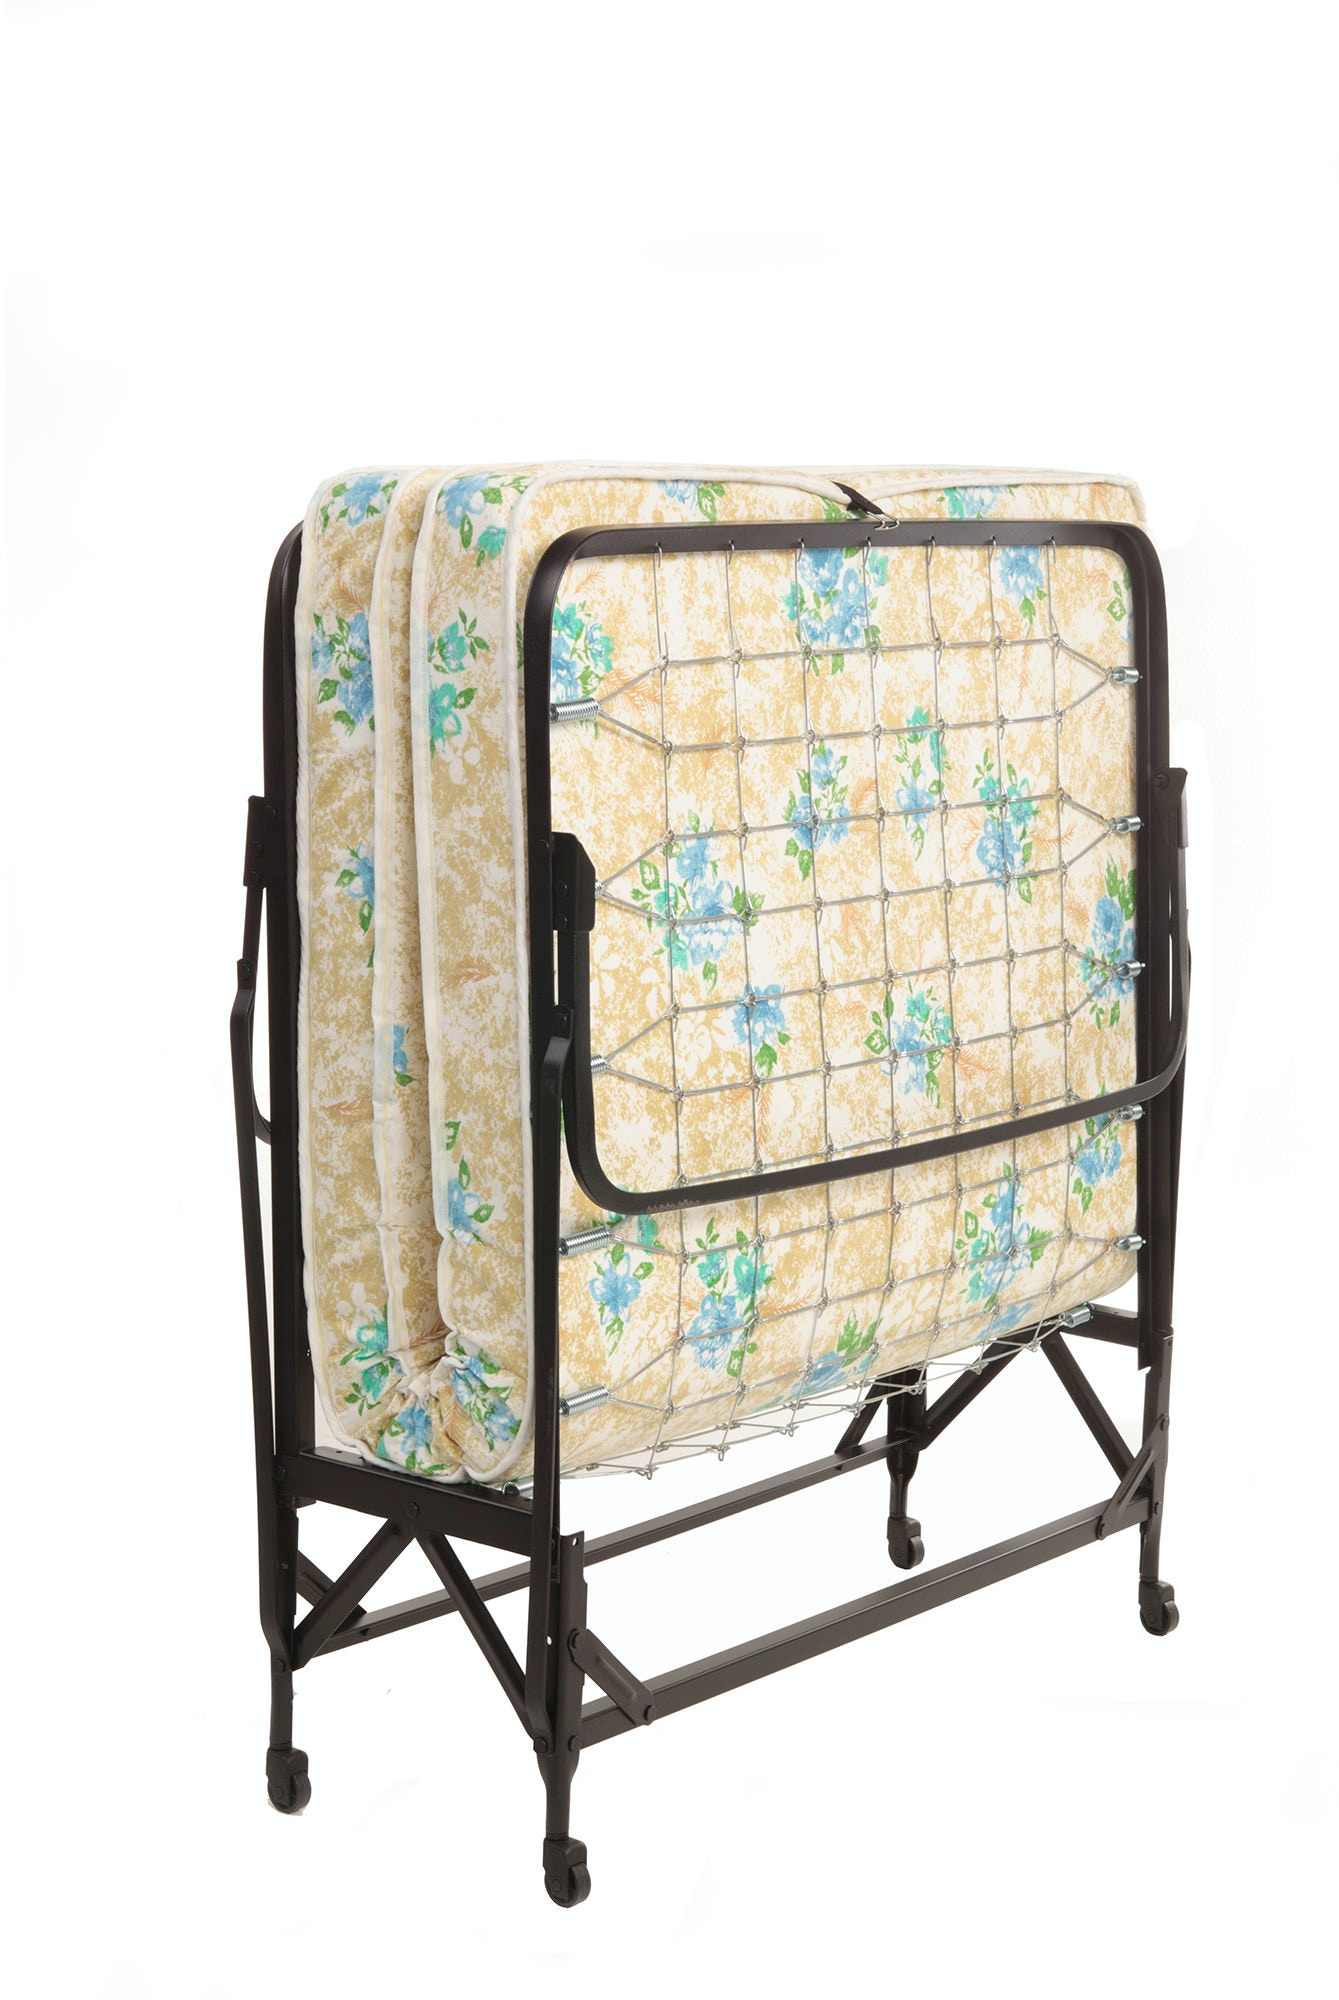 Fashion Bed Group Bedroom Deluxe Rollaway 1220 Folding